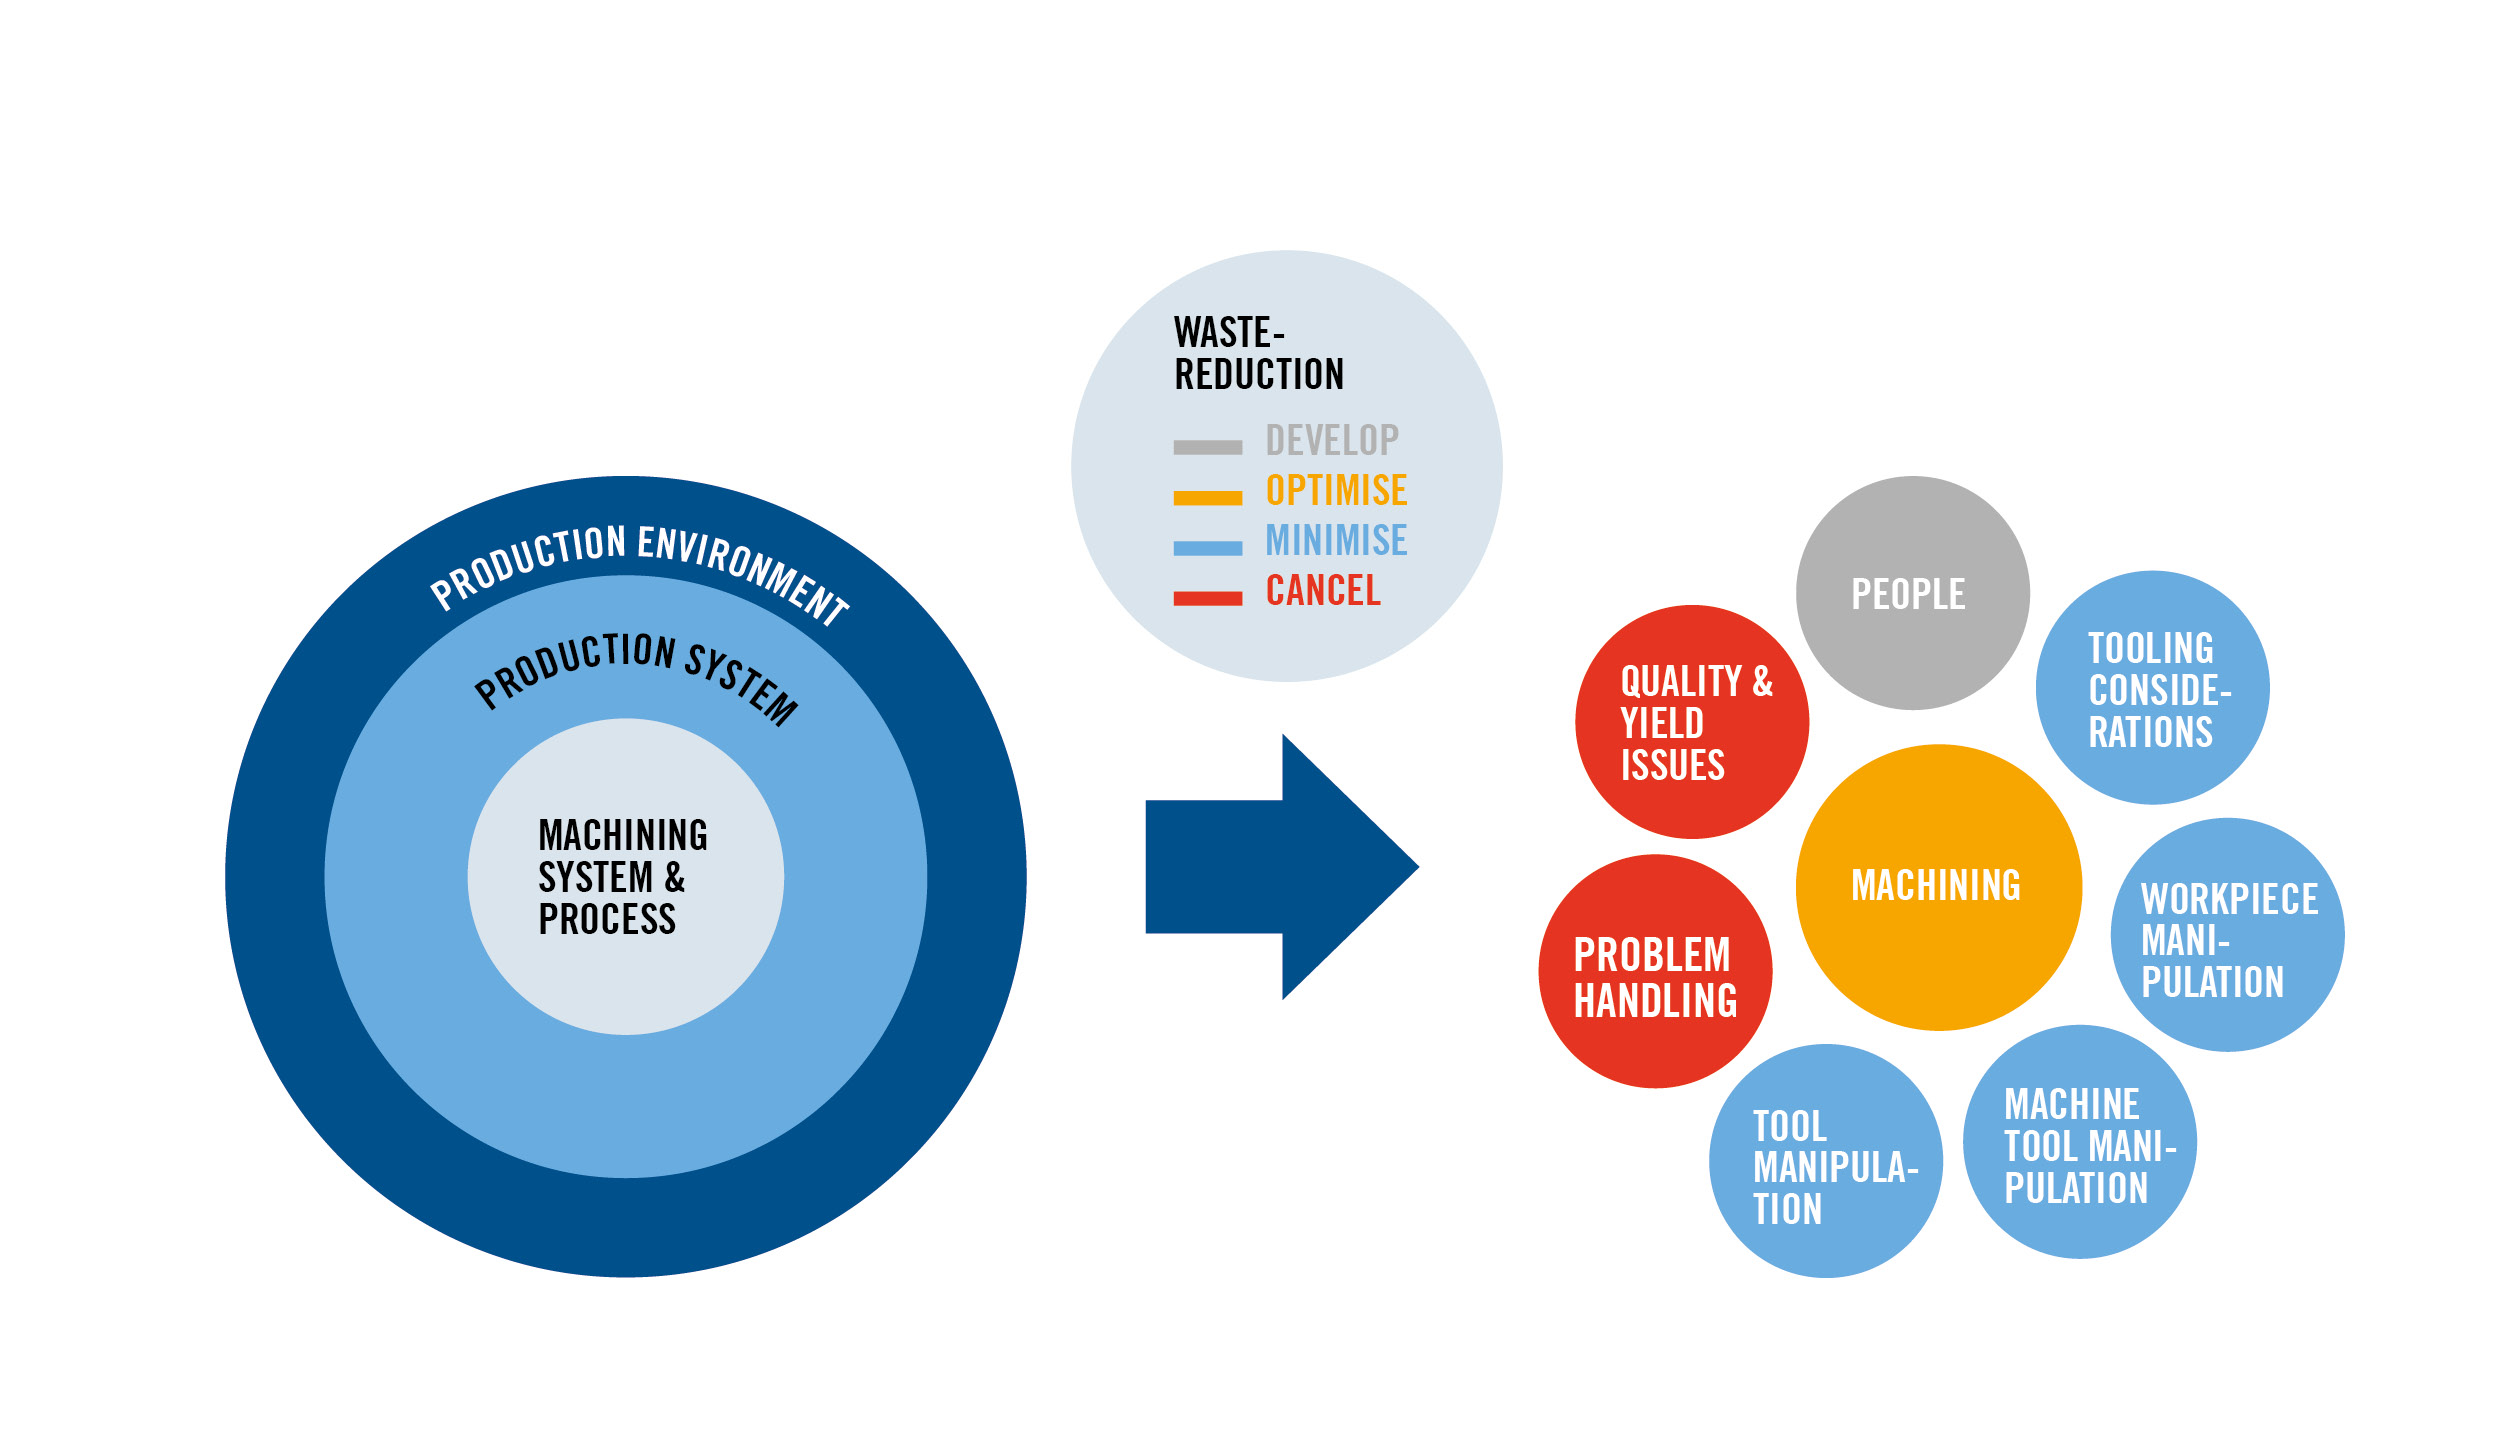 Figure 6 – Overview of value adding adding activities (orange), value enabling activities (blue) and waste activities (red). The people factor (grey) is the key factor to reach optimum achievement of manufacturing top performance.